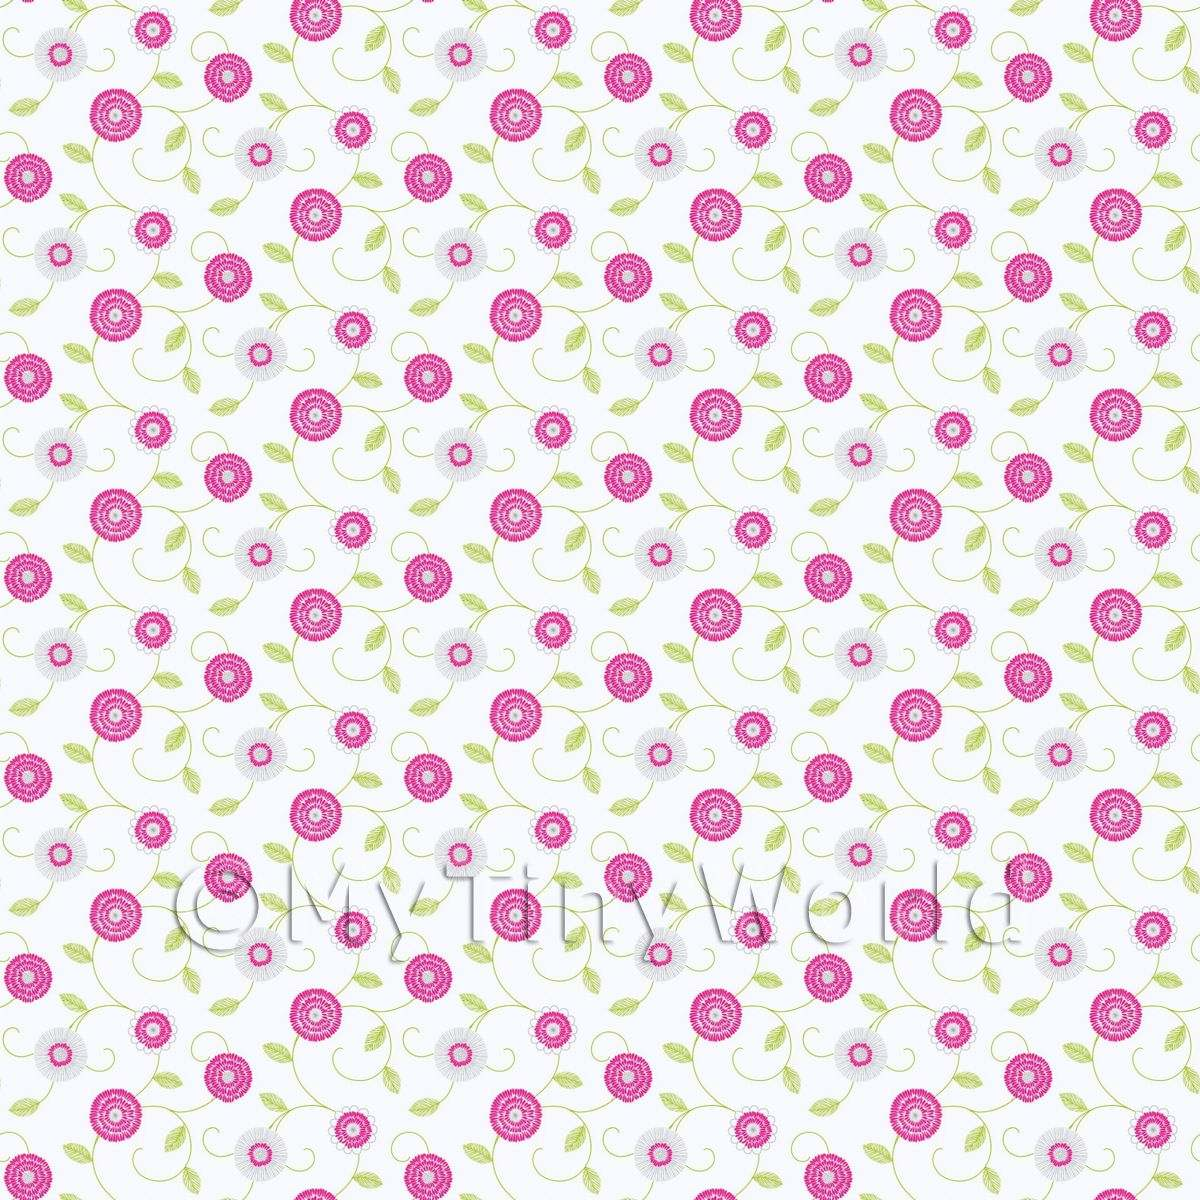 Dolls House Miniature Round Pink And White Flower Wallpaper